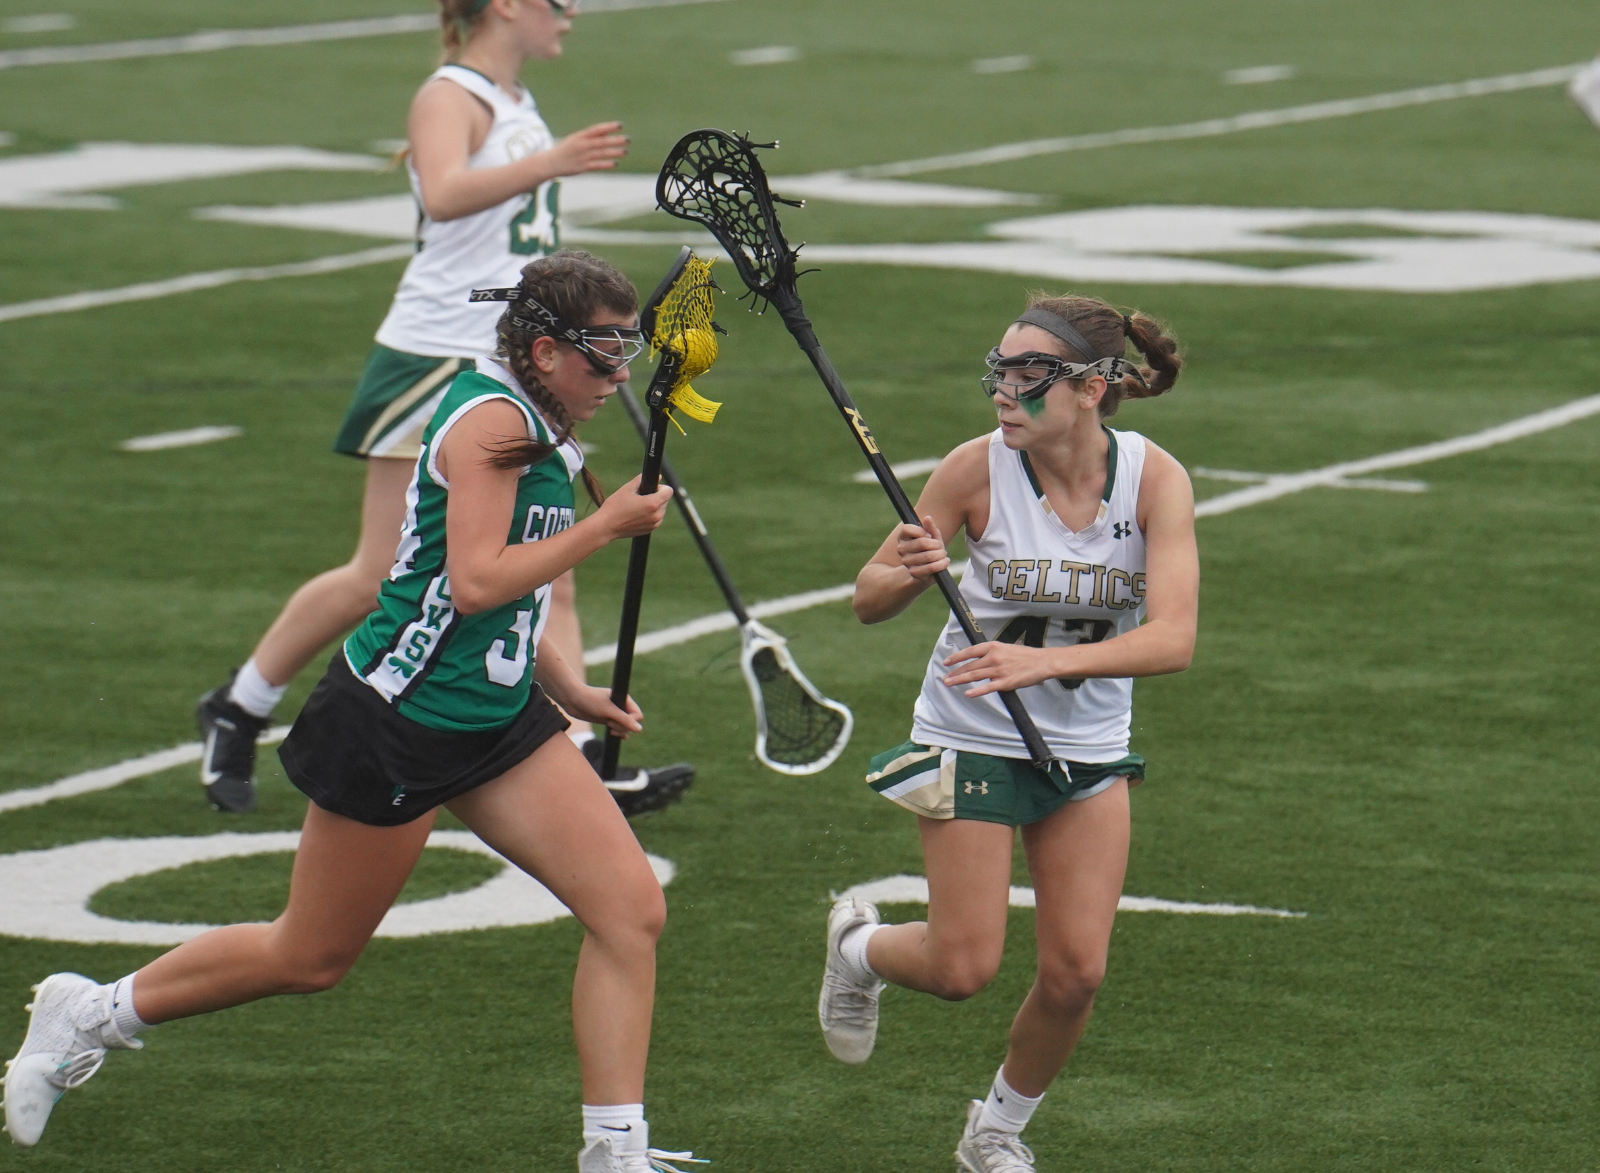 JV Girls Lacrosse vs. Coffman 4/29 (photos)